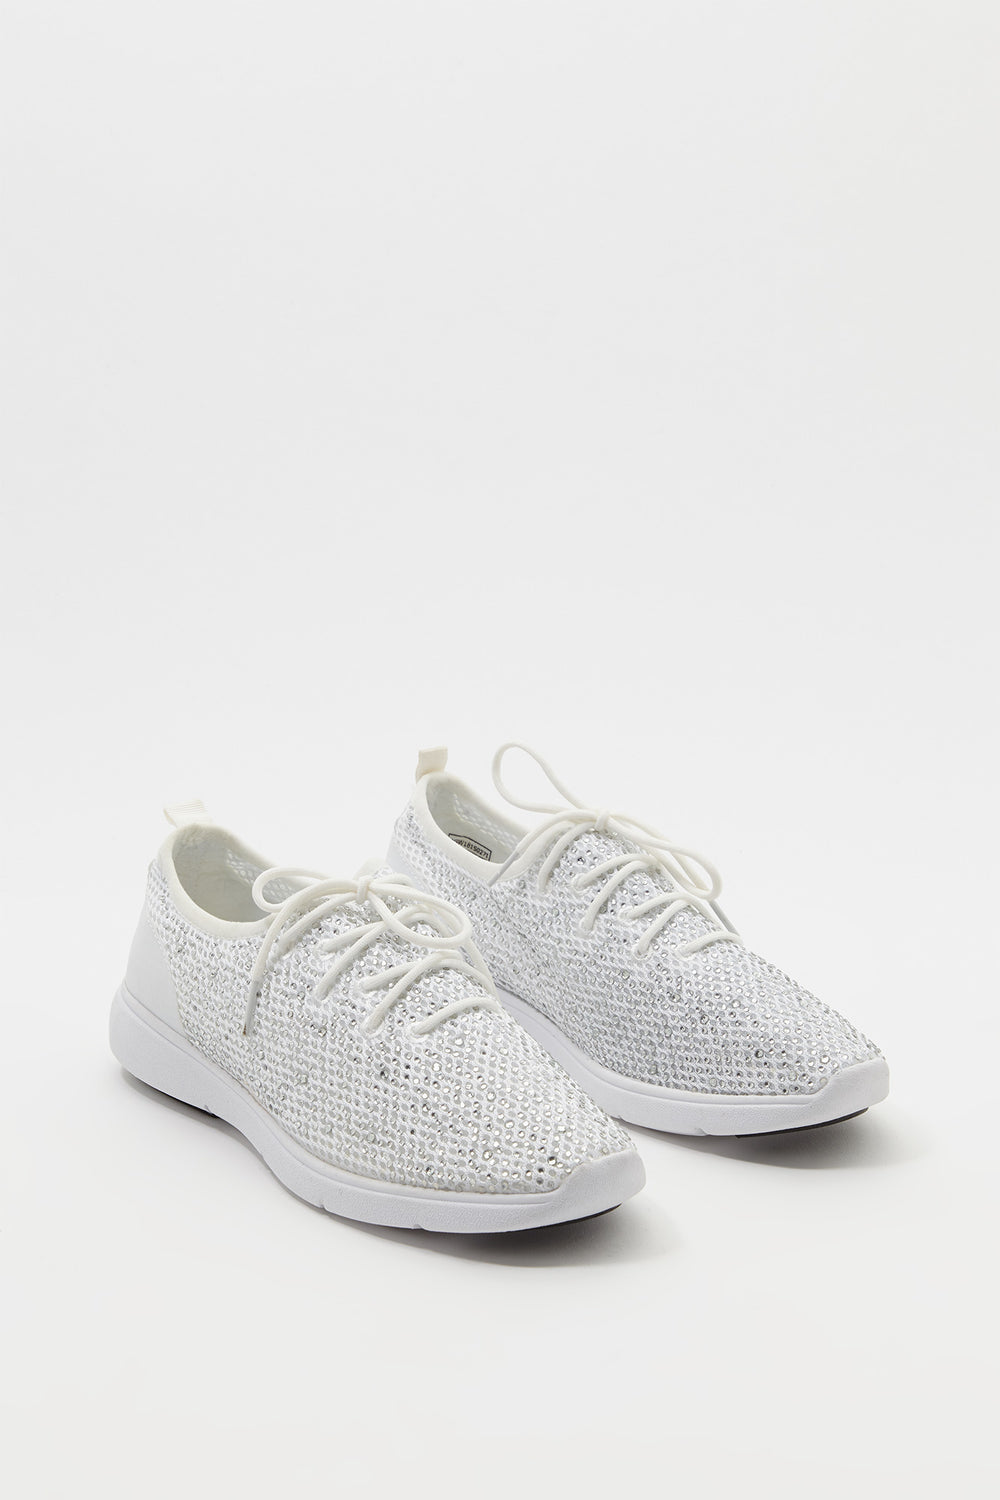 Sequin Lace-Up Sneaker White